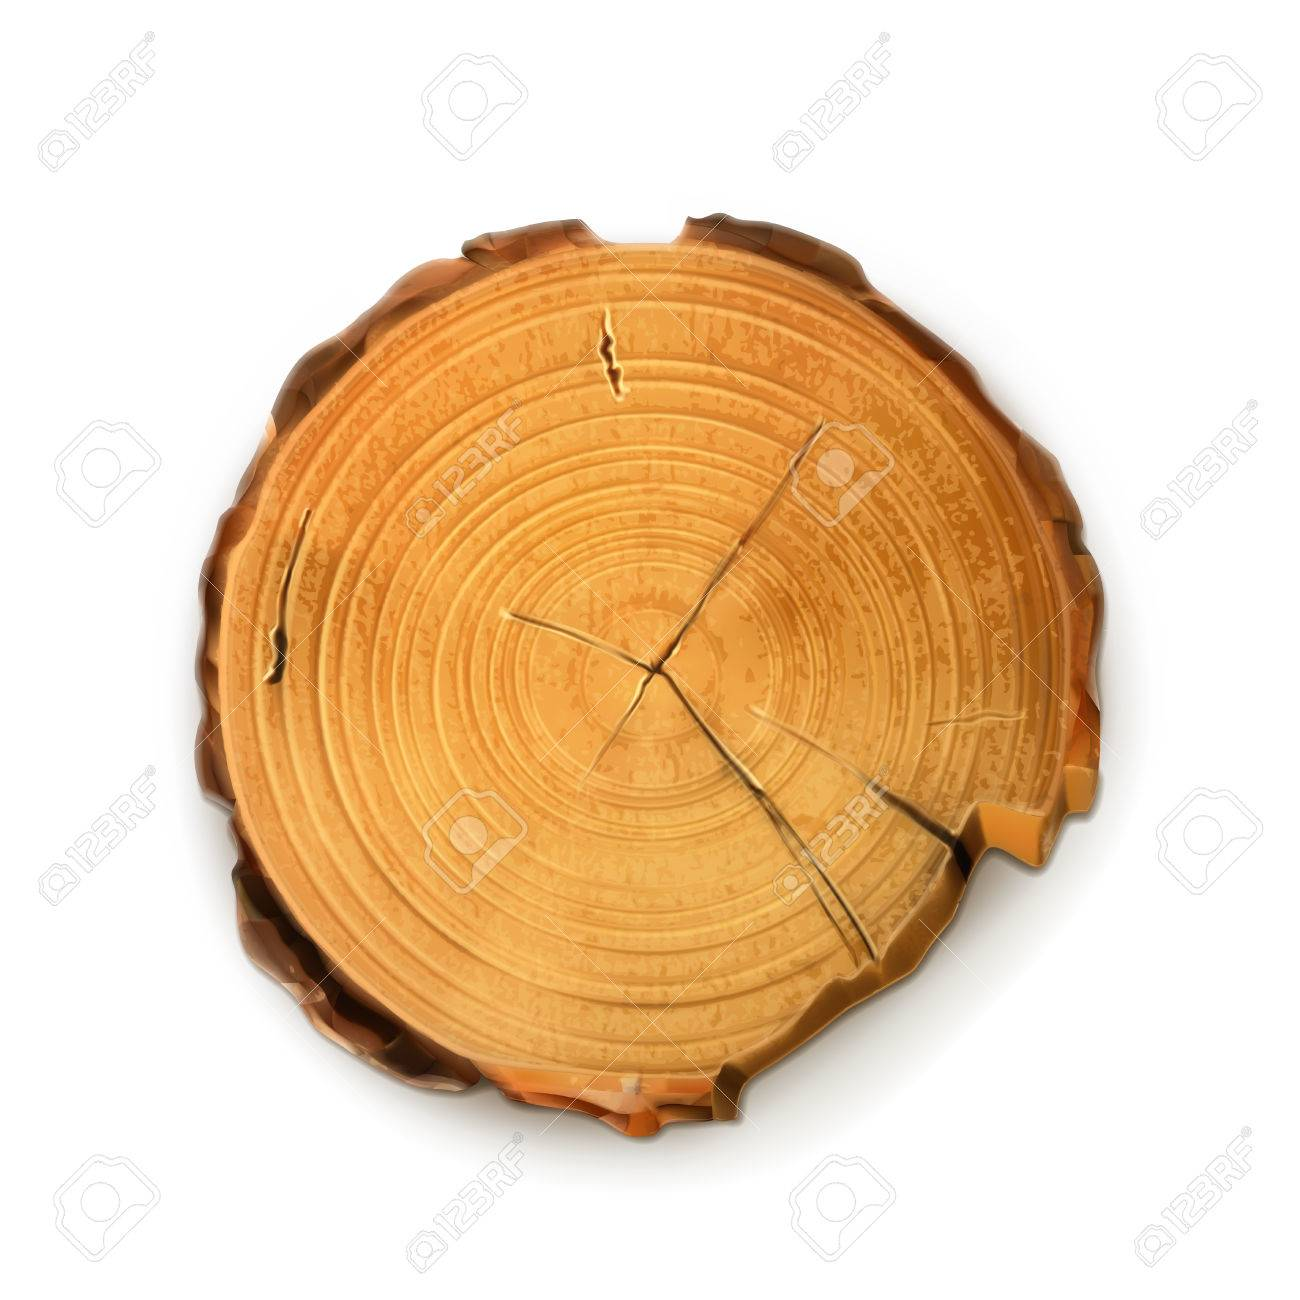 Tree stump, round cut with annual rings vector - 32259325